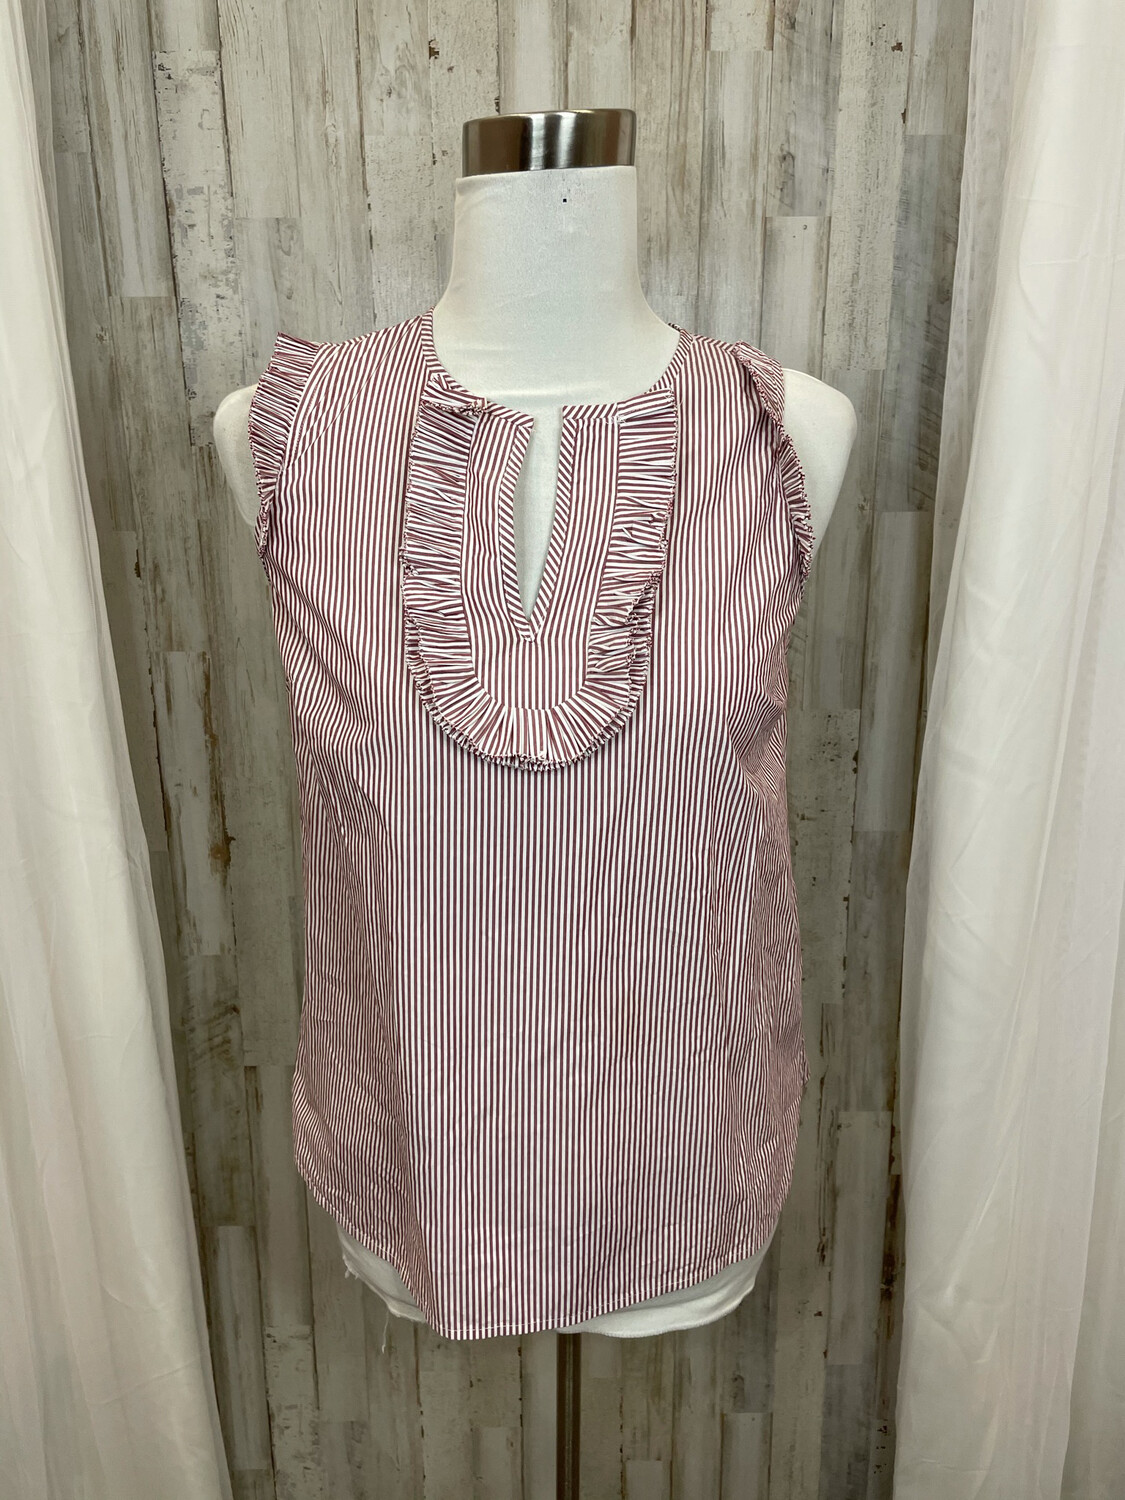 J. Crew Wine Striped Sleeveless Top Ruffled Accent - Size 2